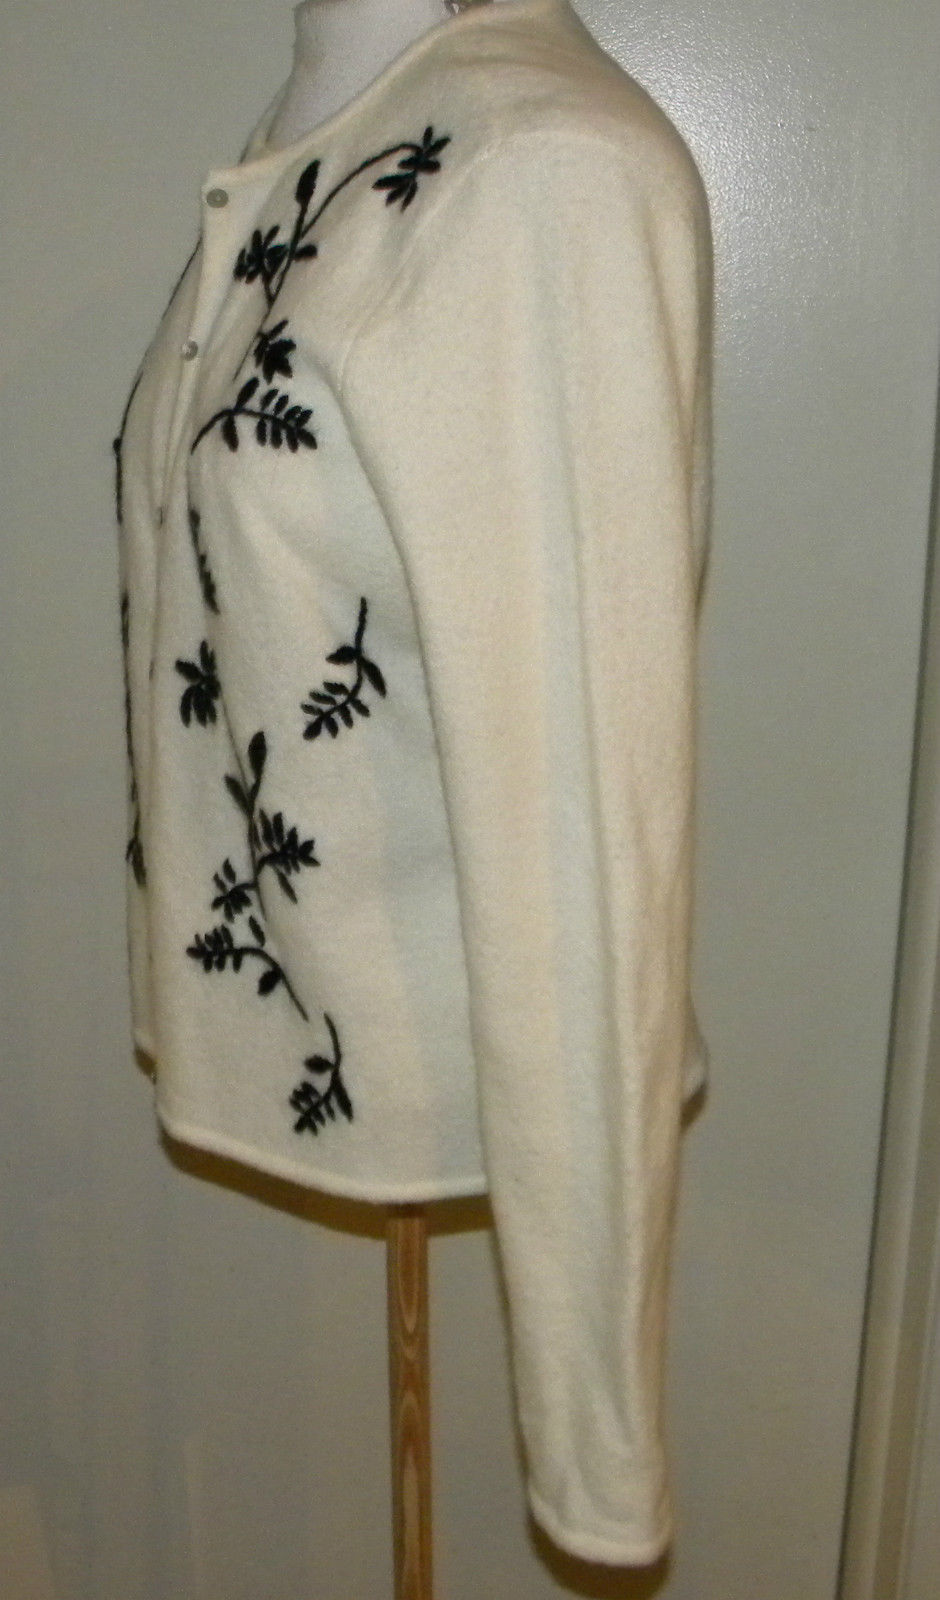 CHARTER CLUB woman's knit button front cardigan Sweater w floral embroidery M